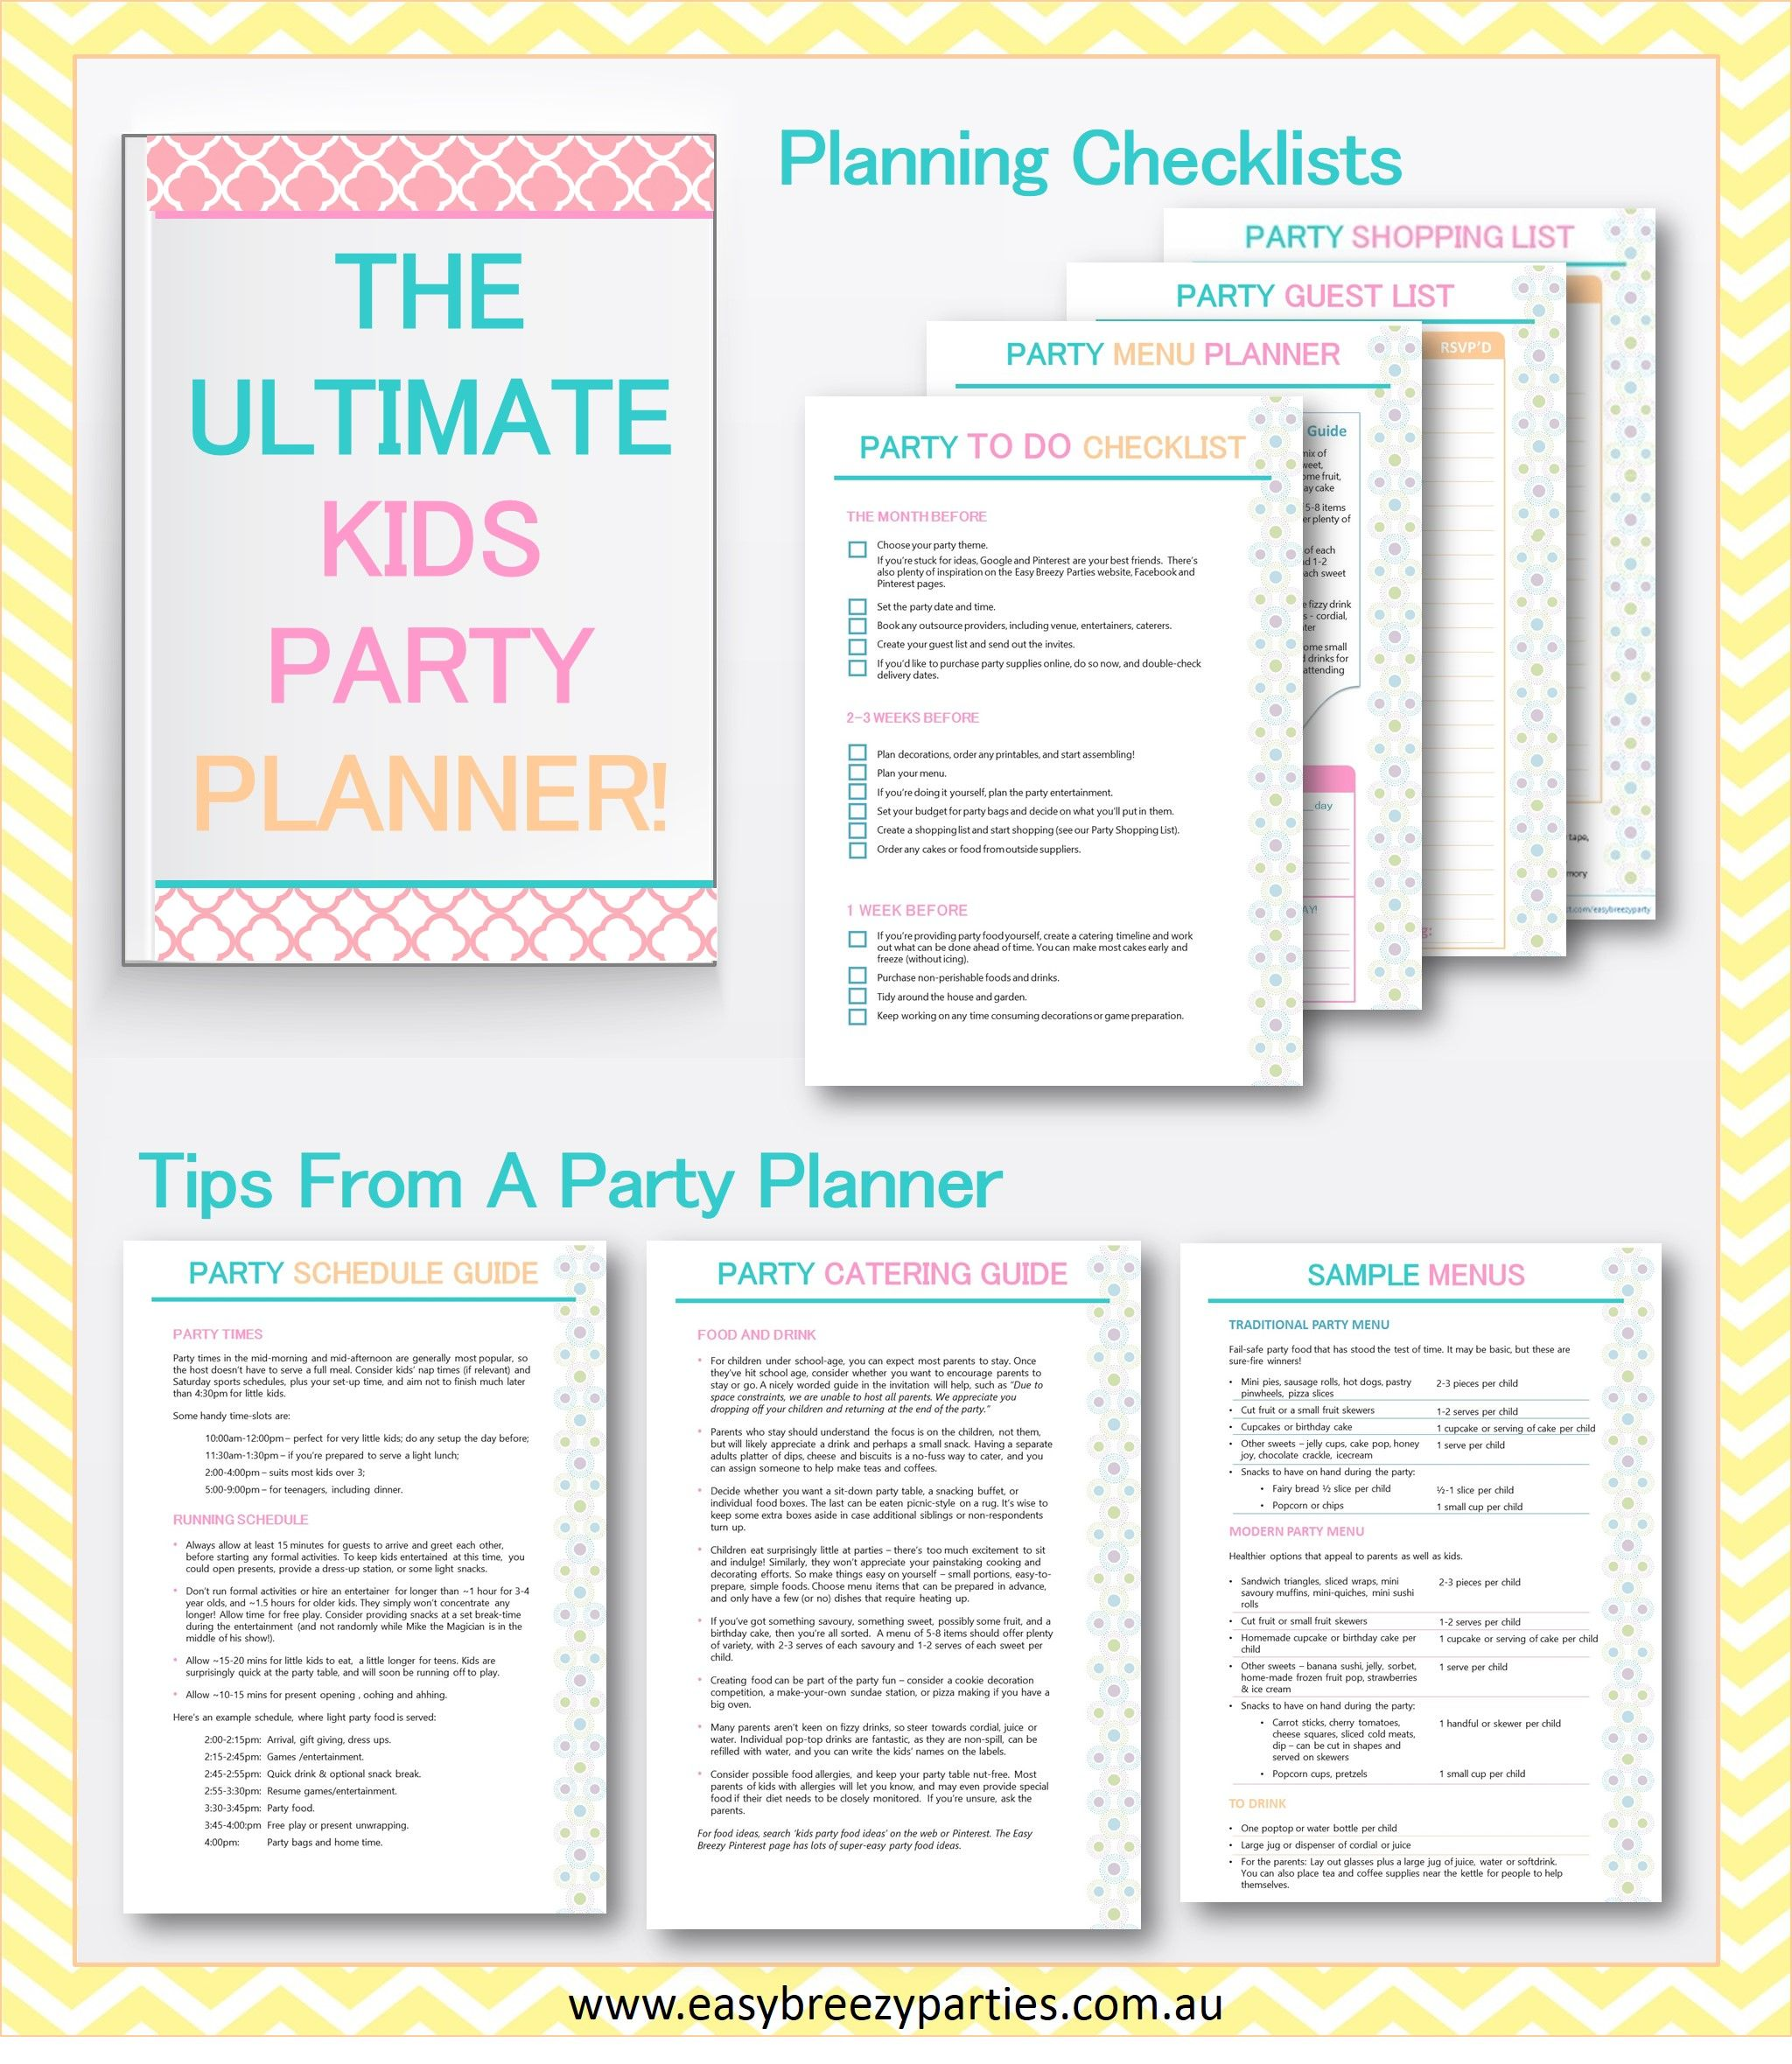 The Ultimate Kids Party Planner